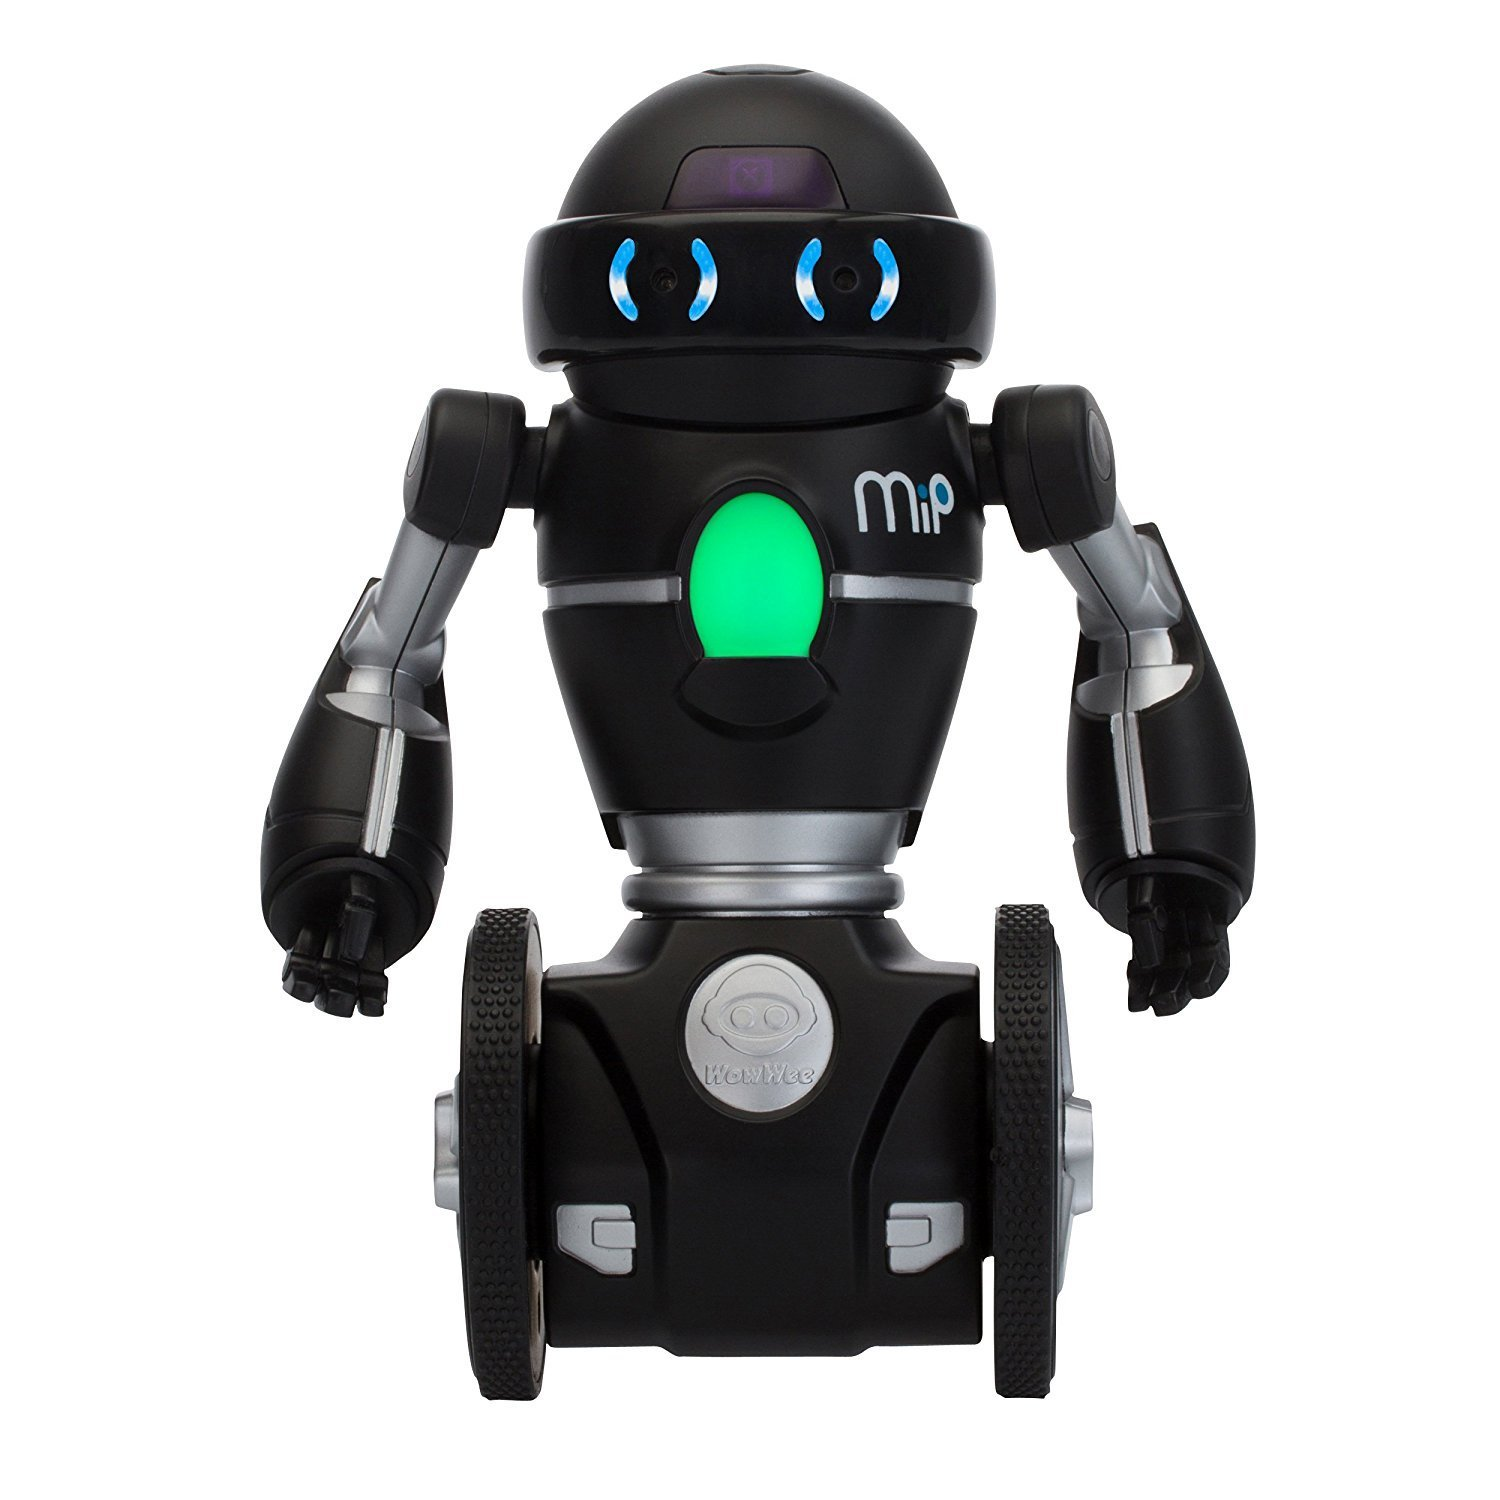 WooWee - MiP the Toy Robot